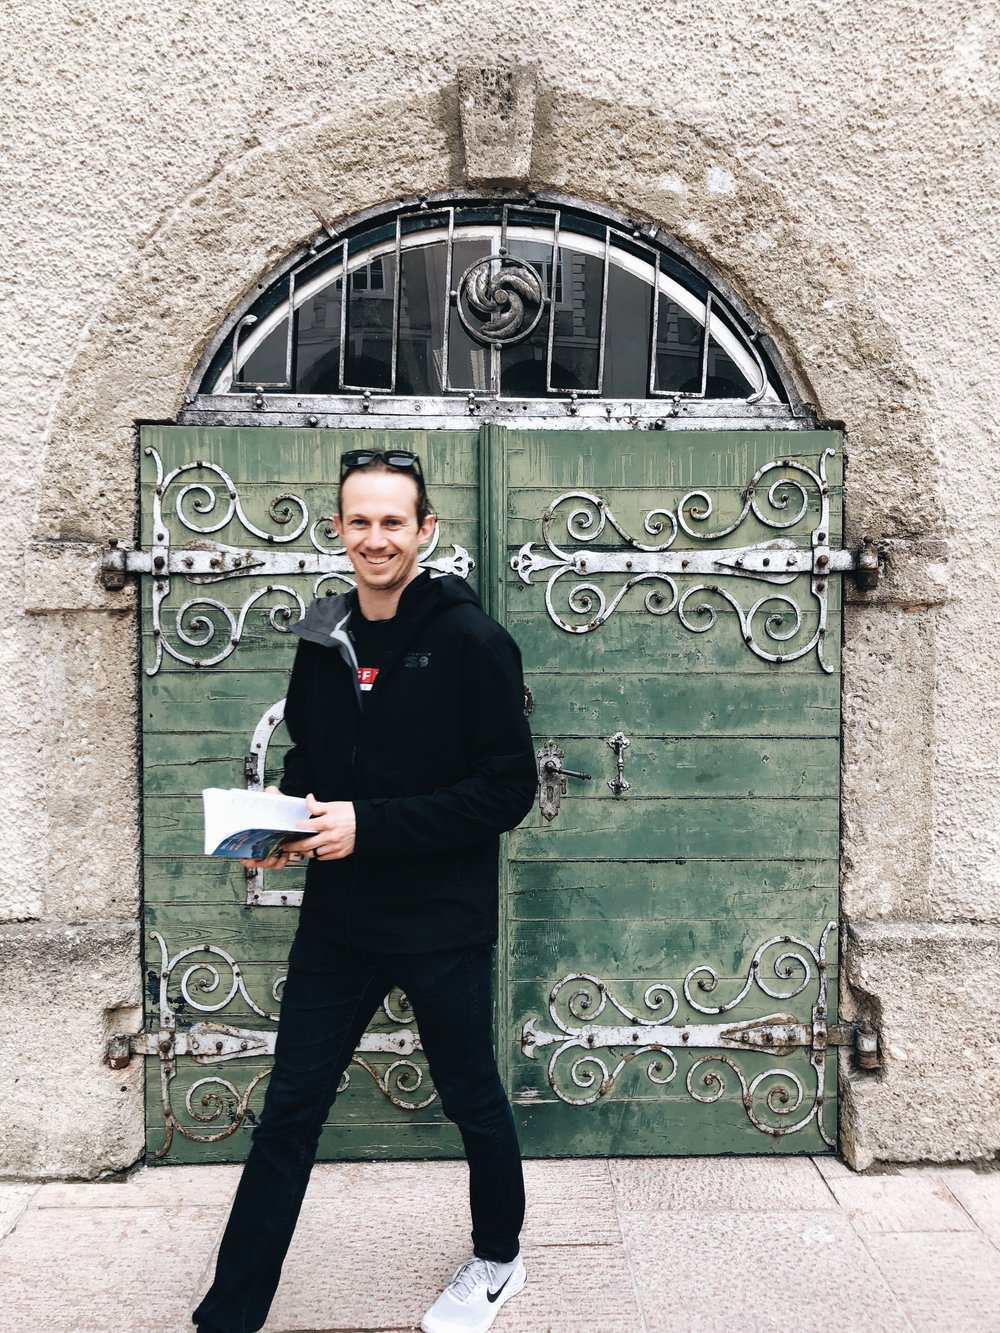 Spencer using the guidebook in Salzburg.